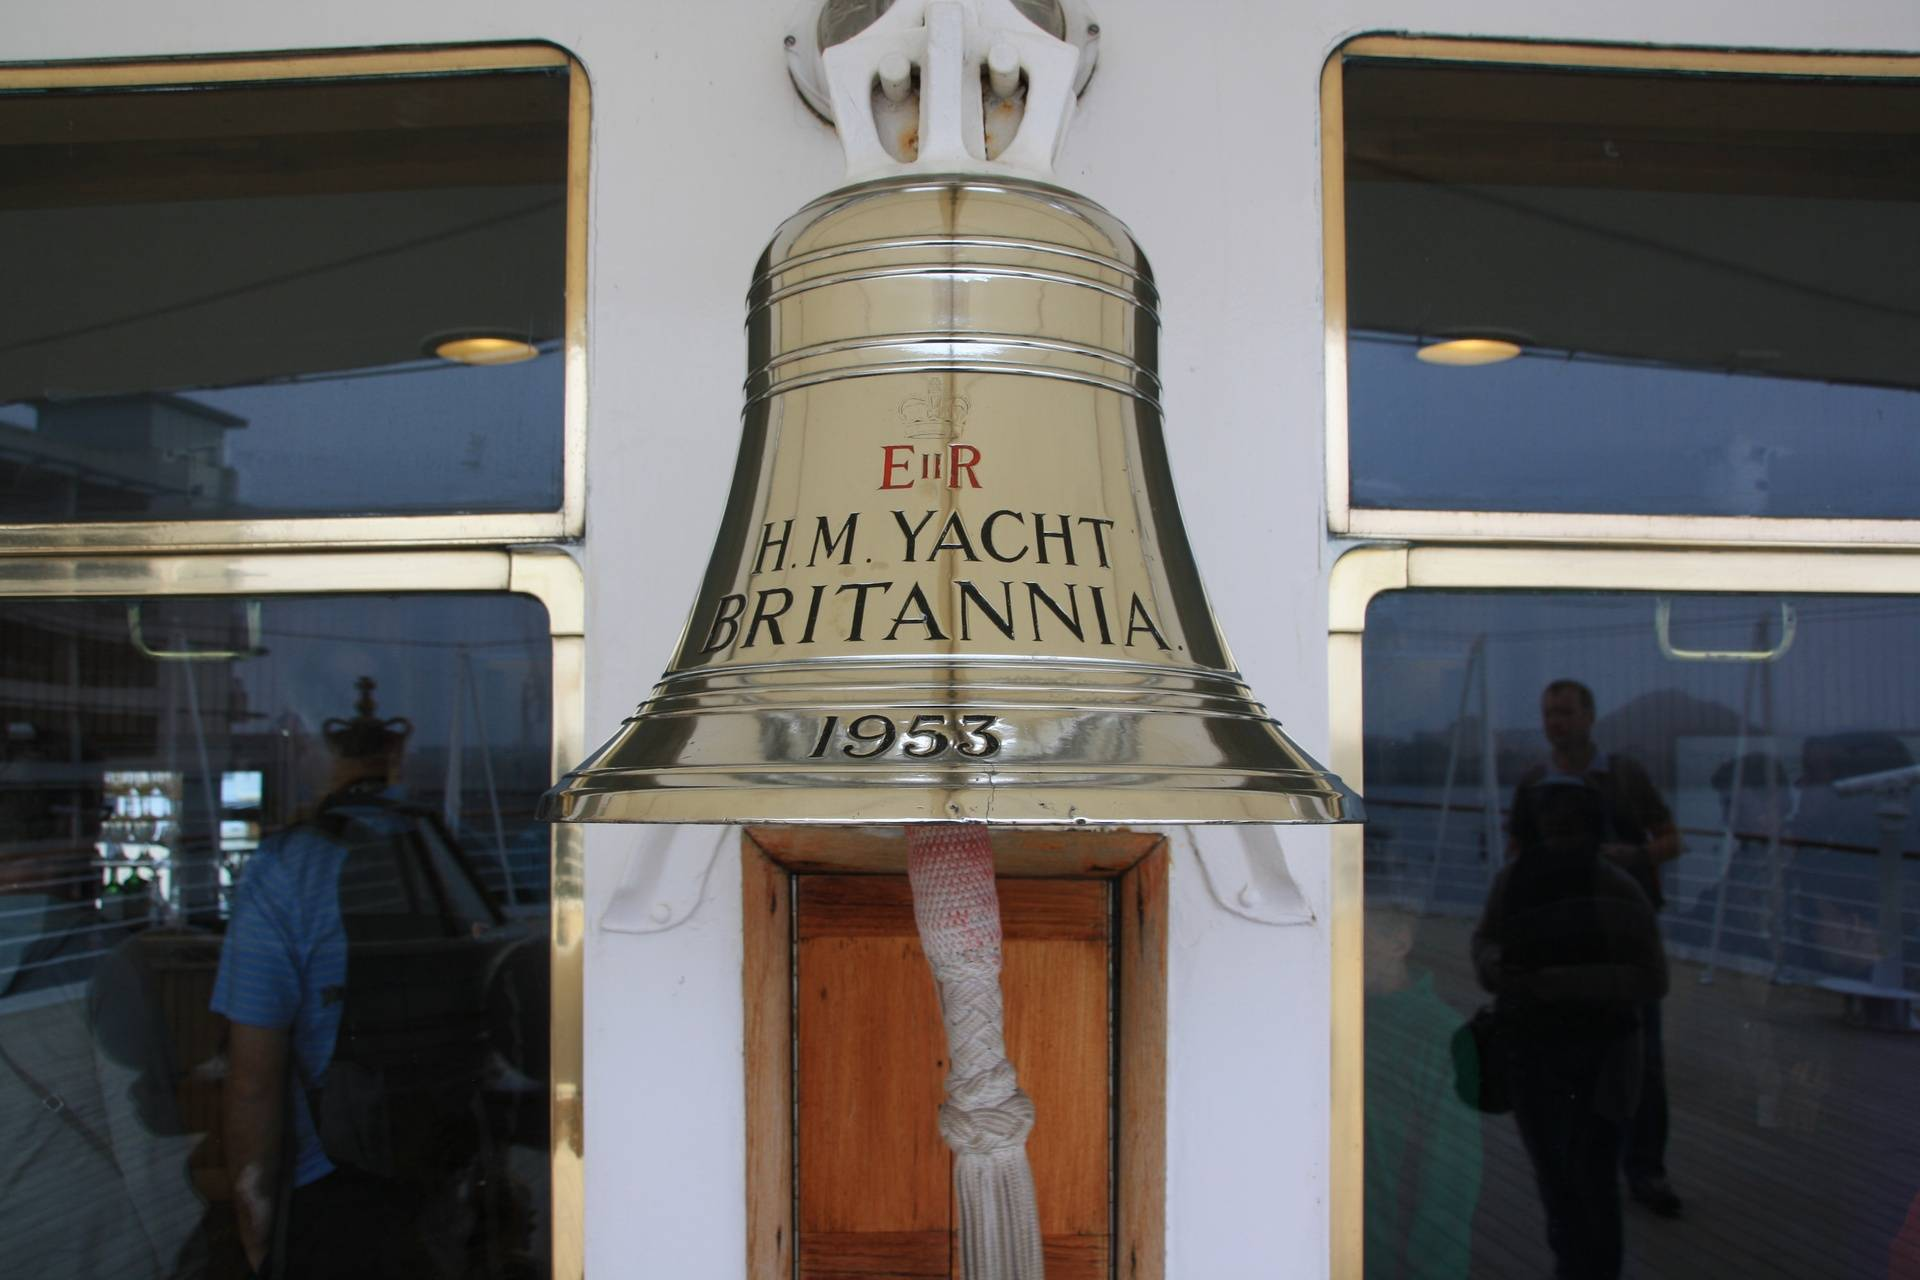 Bell on Royal Yacht Britannica